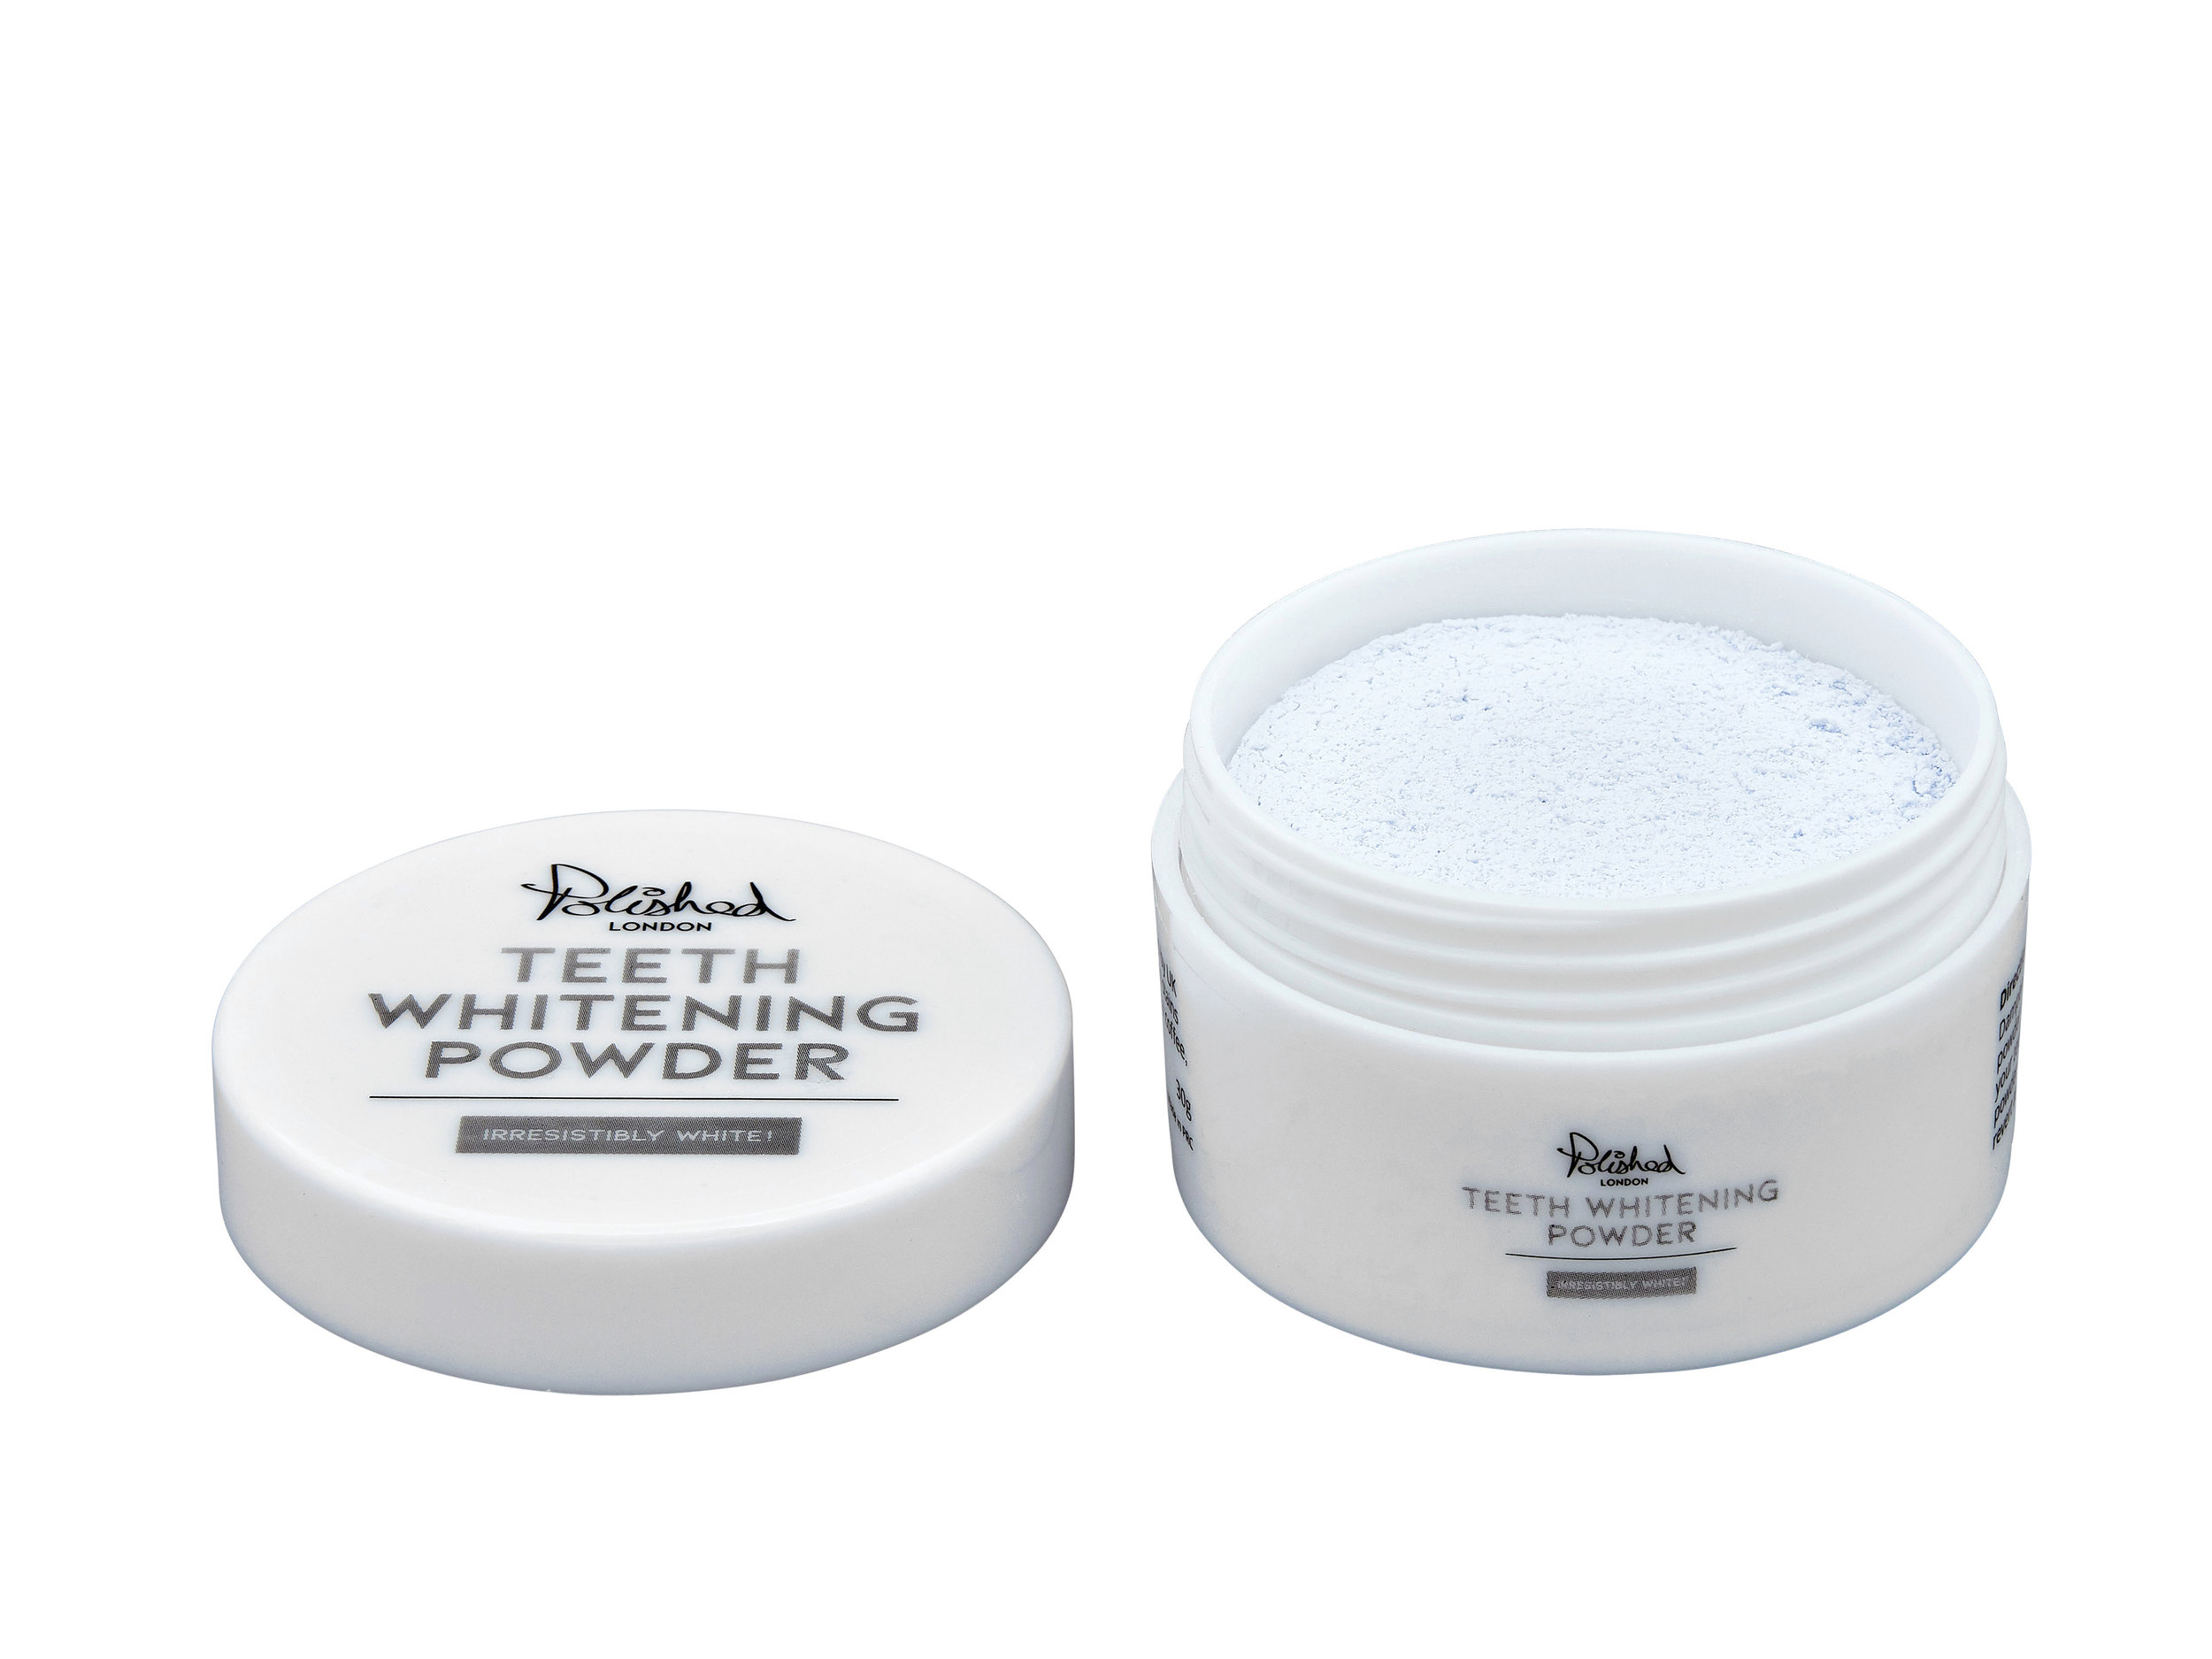 Polished London Teeth Whitening Powder - Polished London's Teeth Whitening Powder contains calcium carbonate, which studies have shown is effective at removing surface stains on the teeth when used regularly. This whitening powder certainly delivers and results are noticeable after 10-14 days. Use once a day, brushing your teeth for two minutes (I've used it both after brushing my teeth with my usual toothpaste and combining it with it too, thus only brushing once). After the first two weeks use for two minutes once a week to keep your teeth sparkling and stain-free. This powder has a peppermint taste and slightly fizzes when using. It's suitable for those with sensitive teeth too, but if the enamel on your teeth is damaged or worn off, consult your dentist before using. £25.99